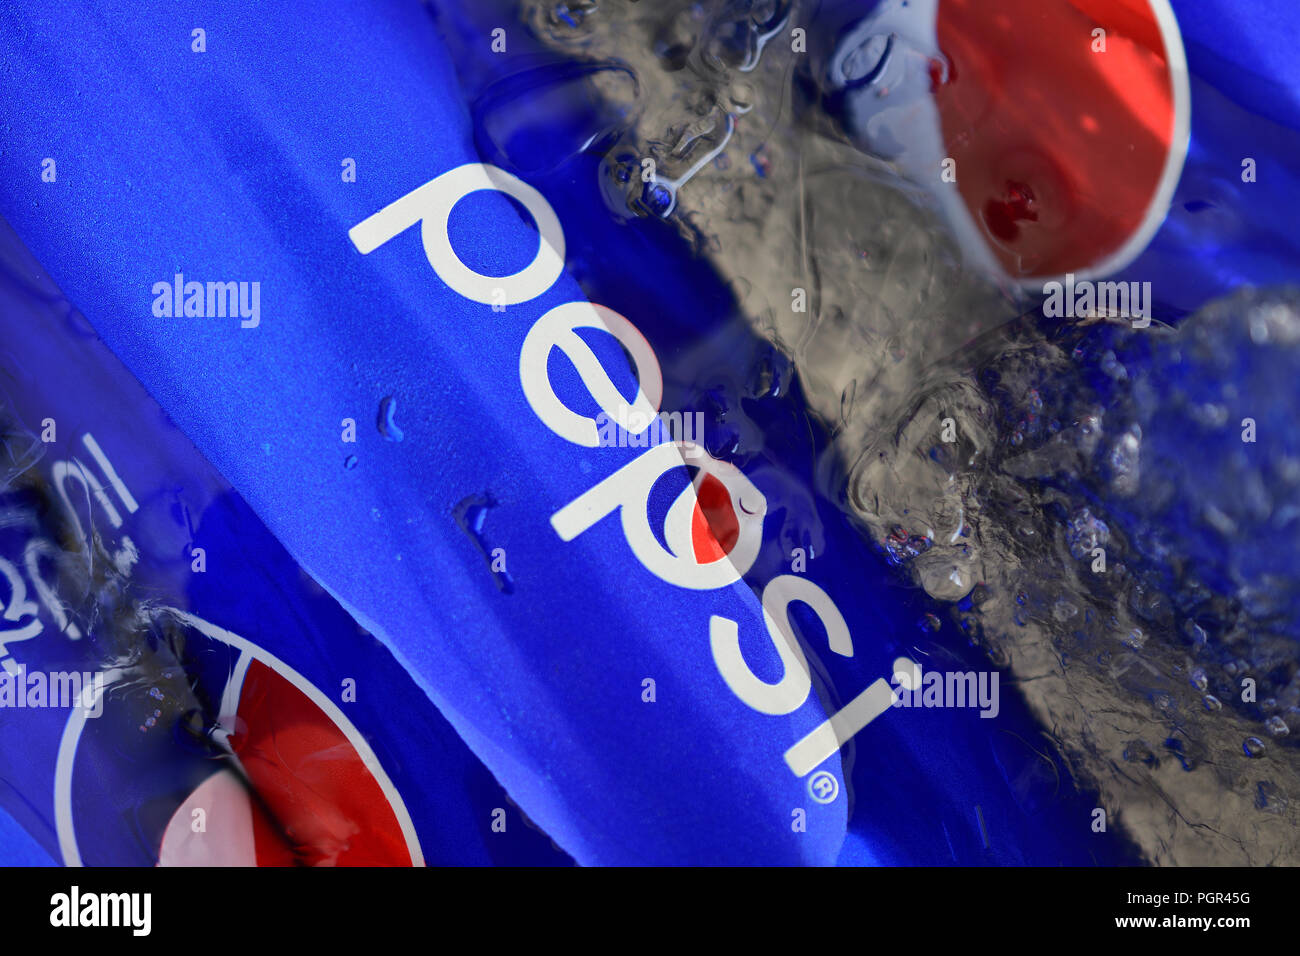 Pepsi Can Blue Background Stock Photos & Pepsi Can Blue